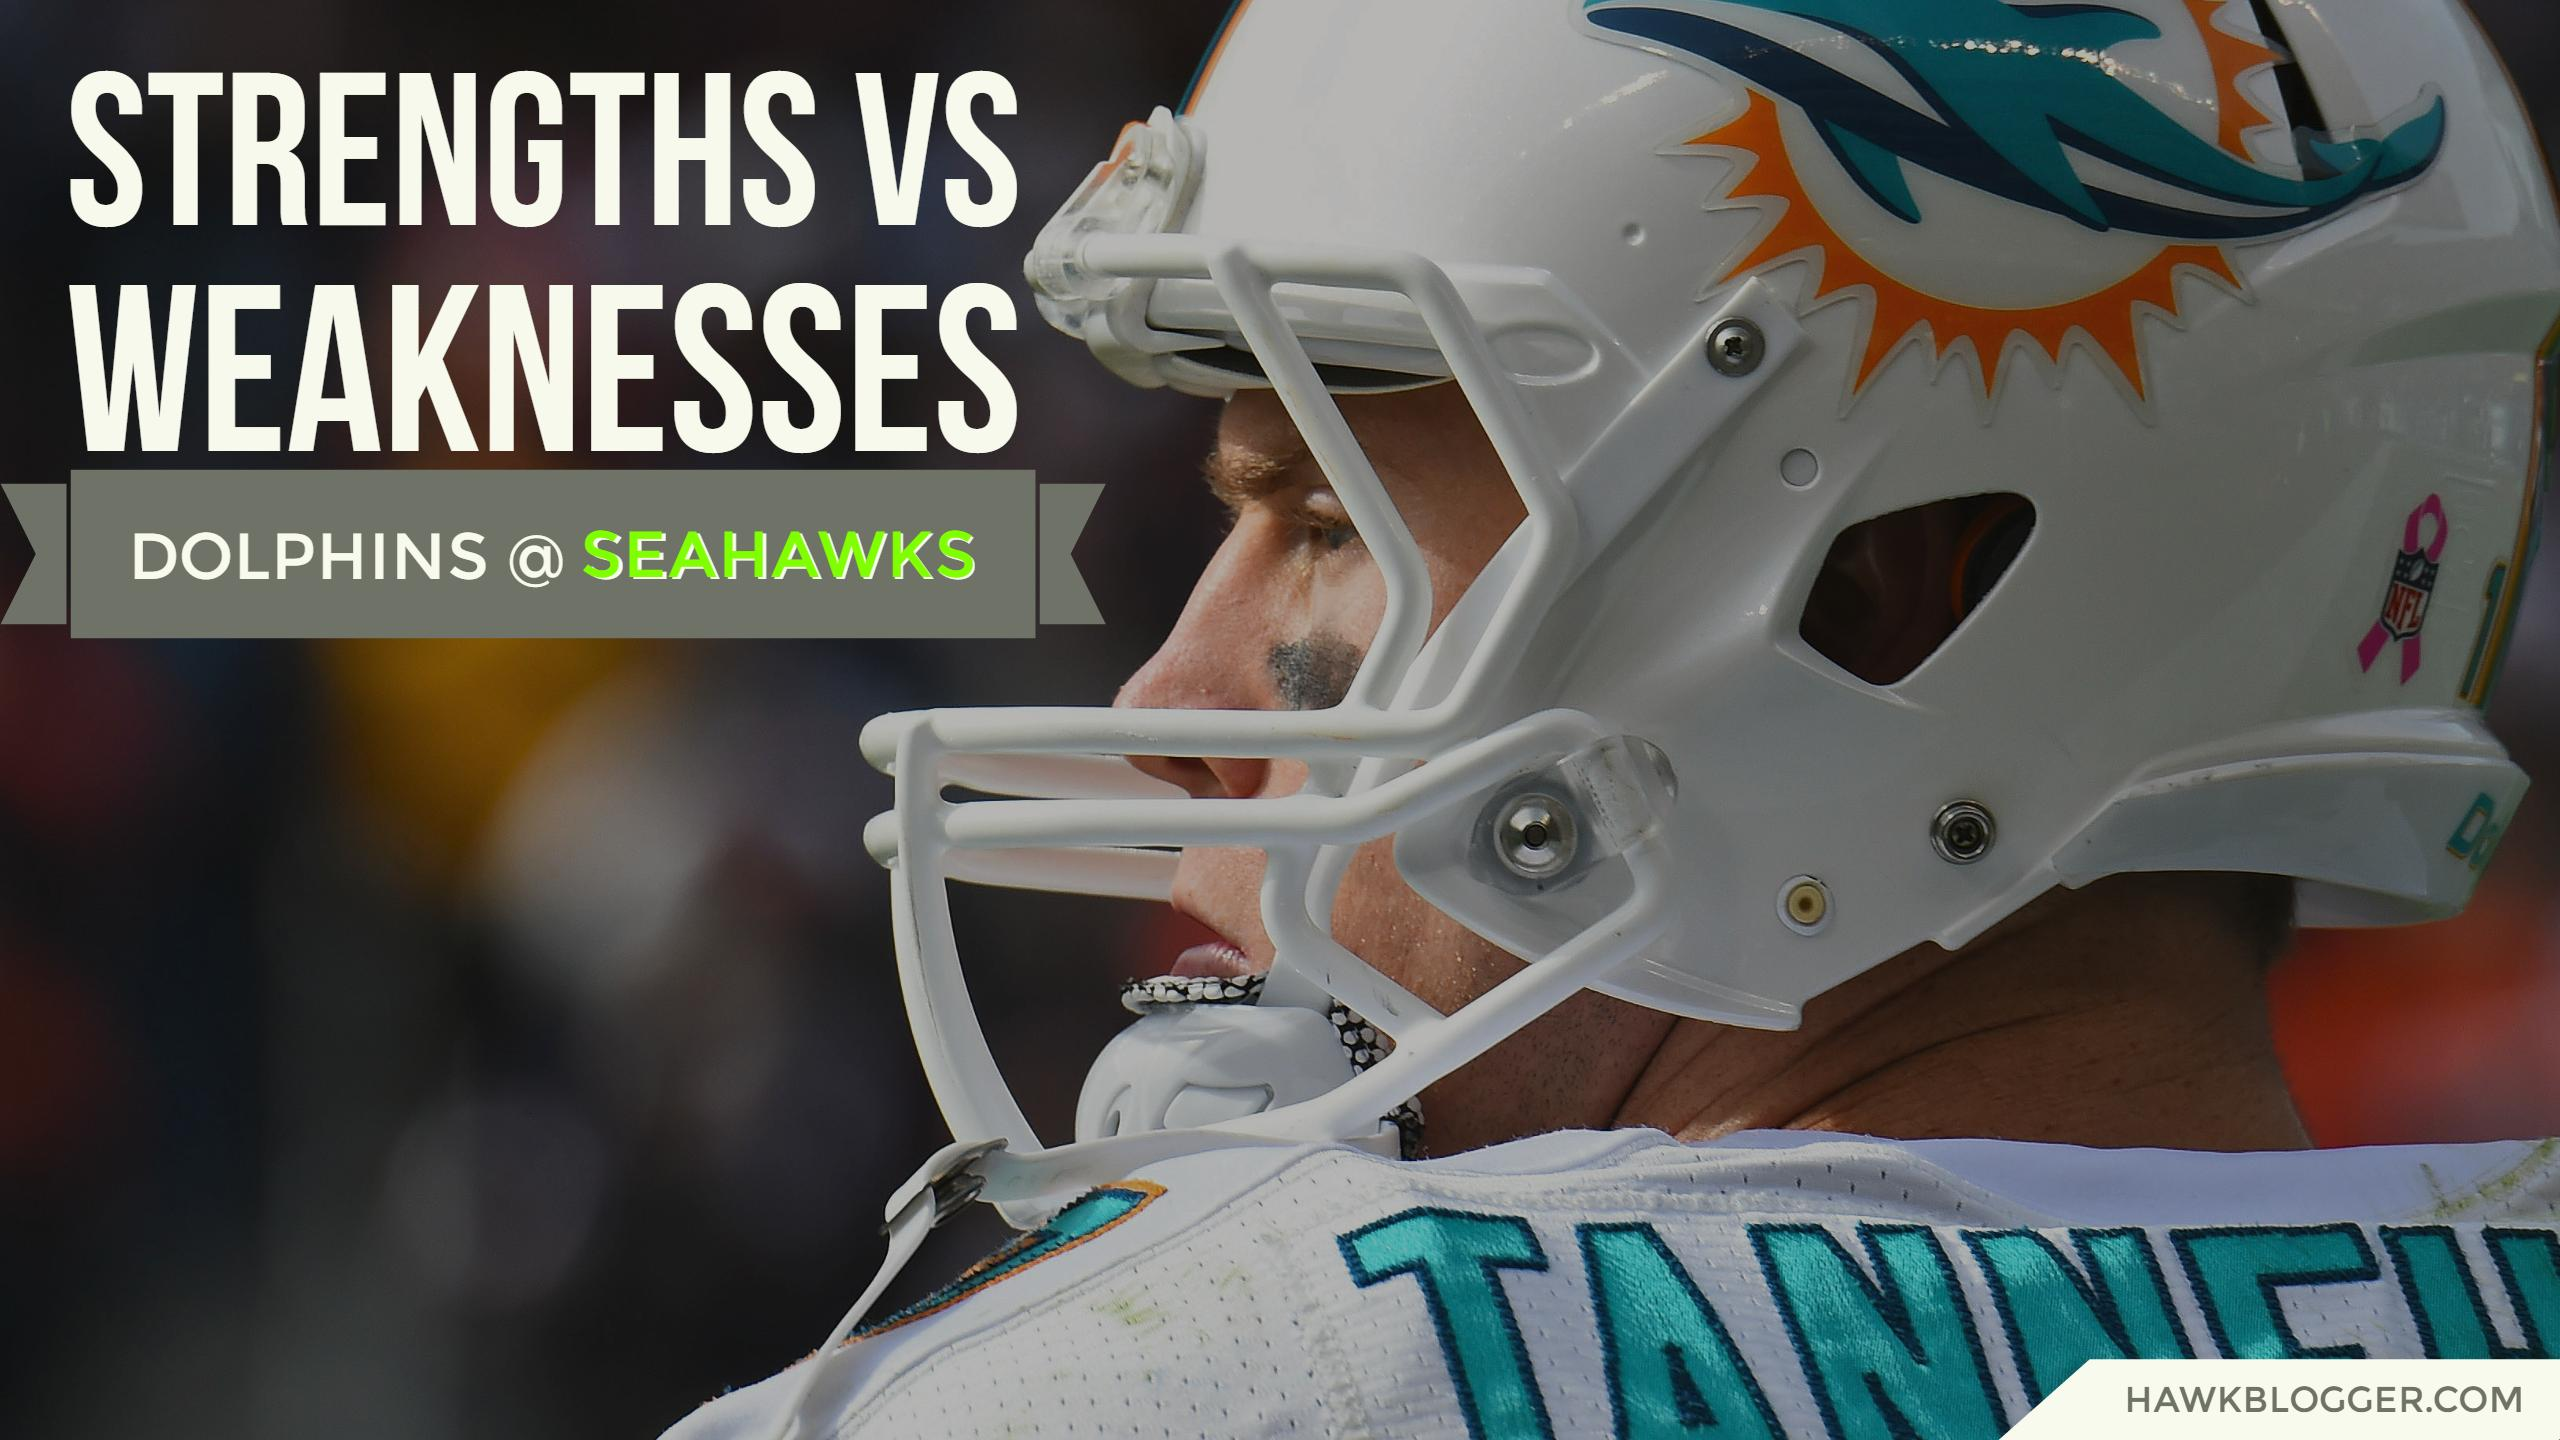 strengths vs weaknesses miami dolphins face stiff test vs seahawks strengths vs weaknesses dolphins